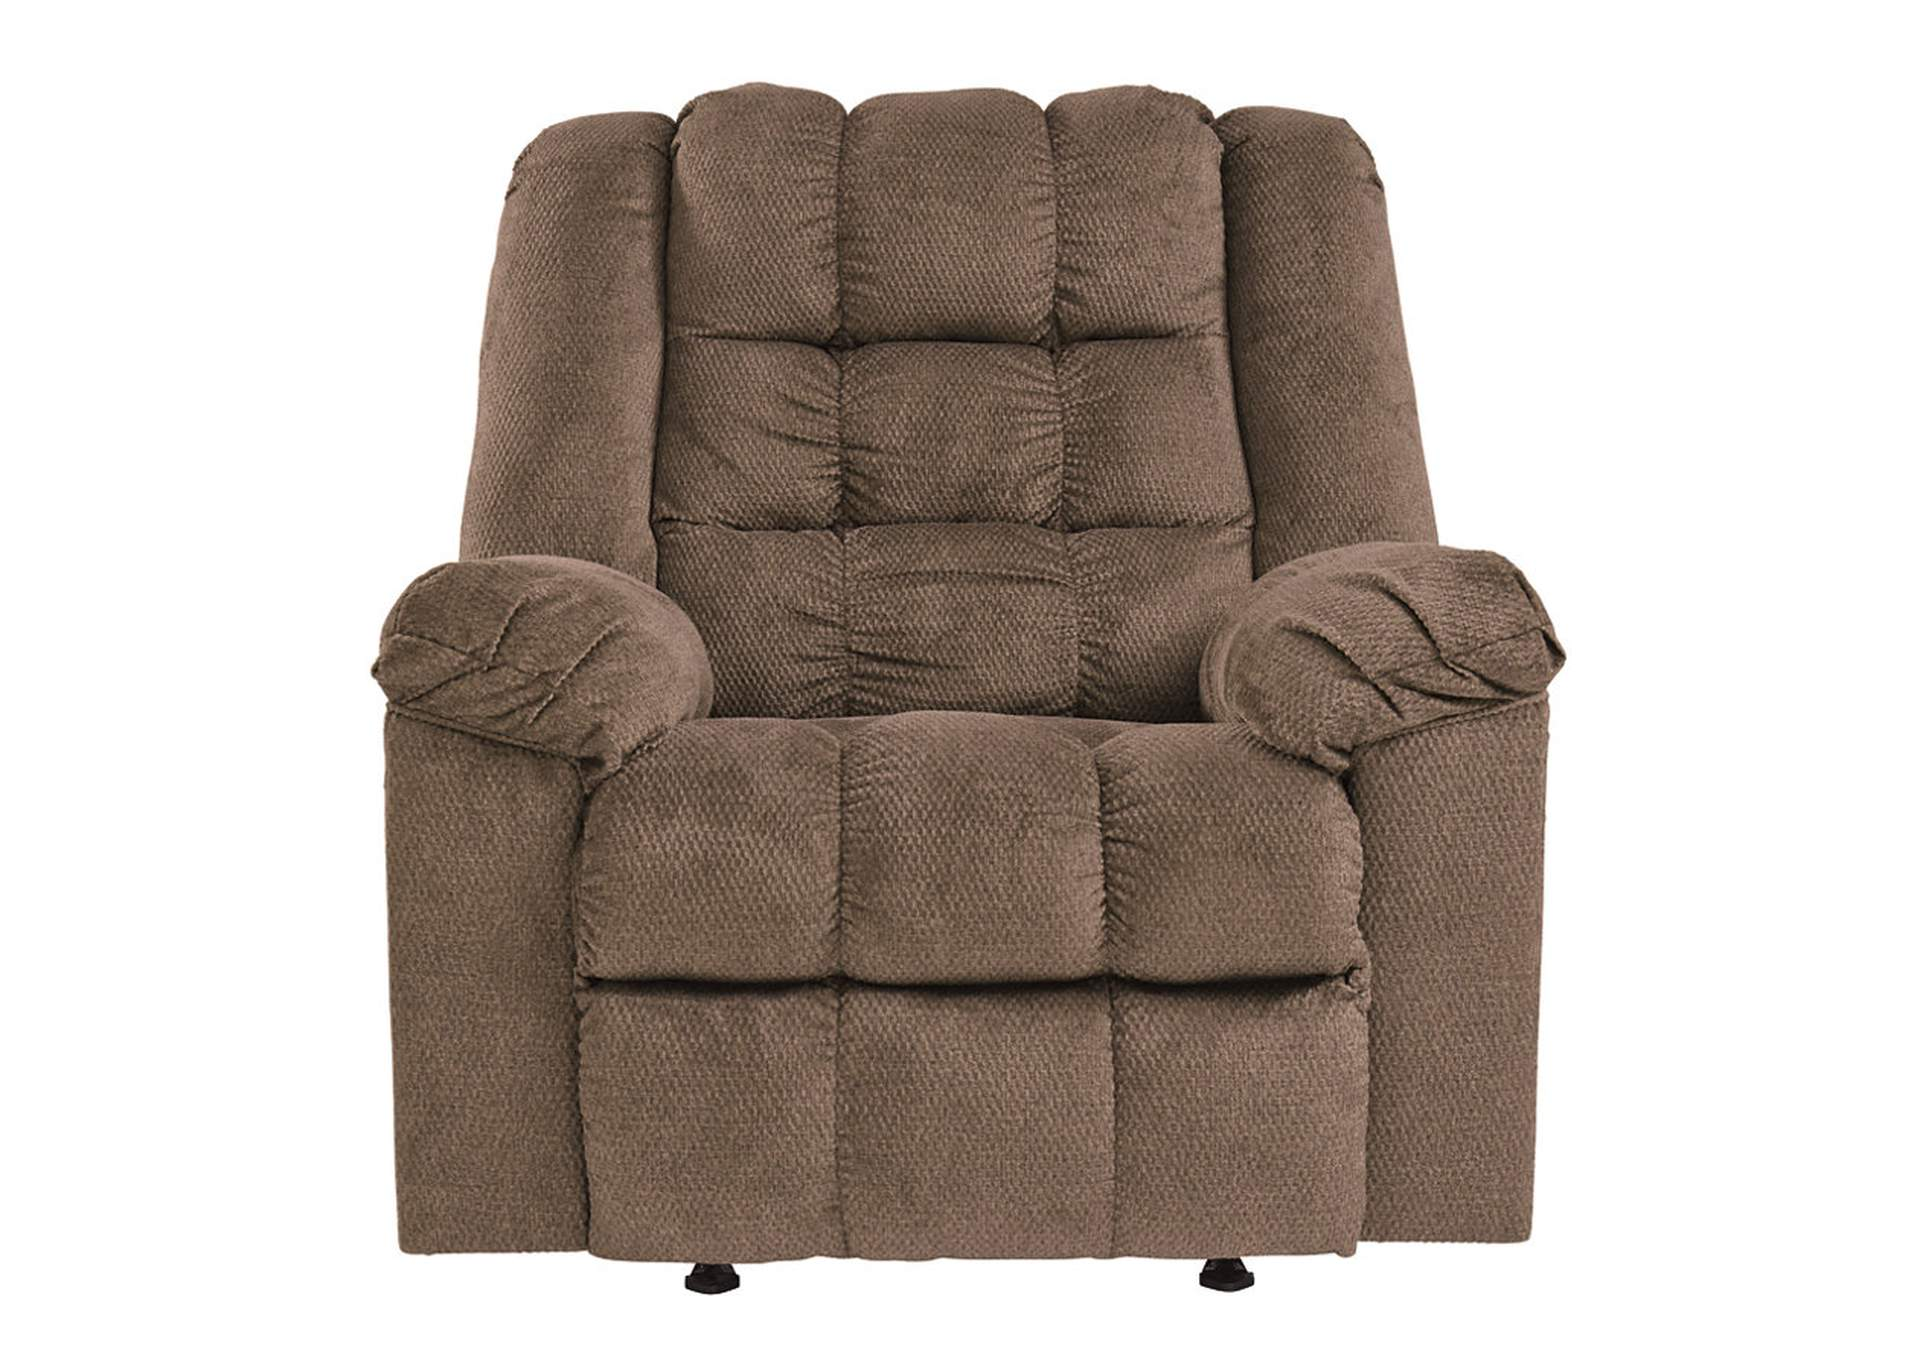 Drakestone Autmn Rocker Recliner,Signature Design By Ashley